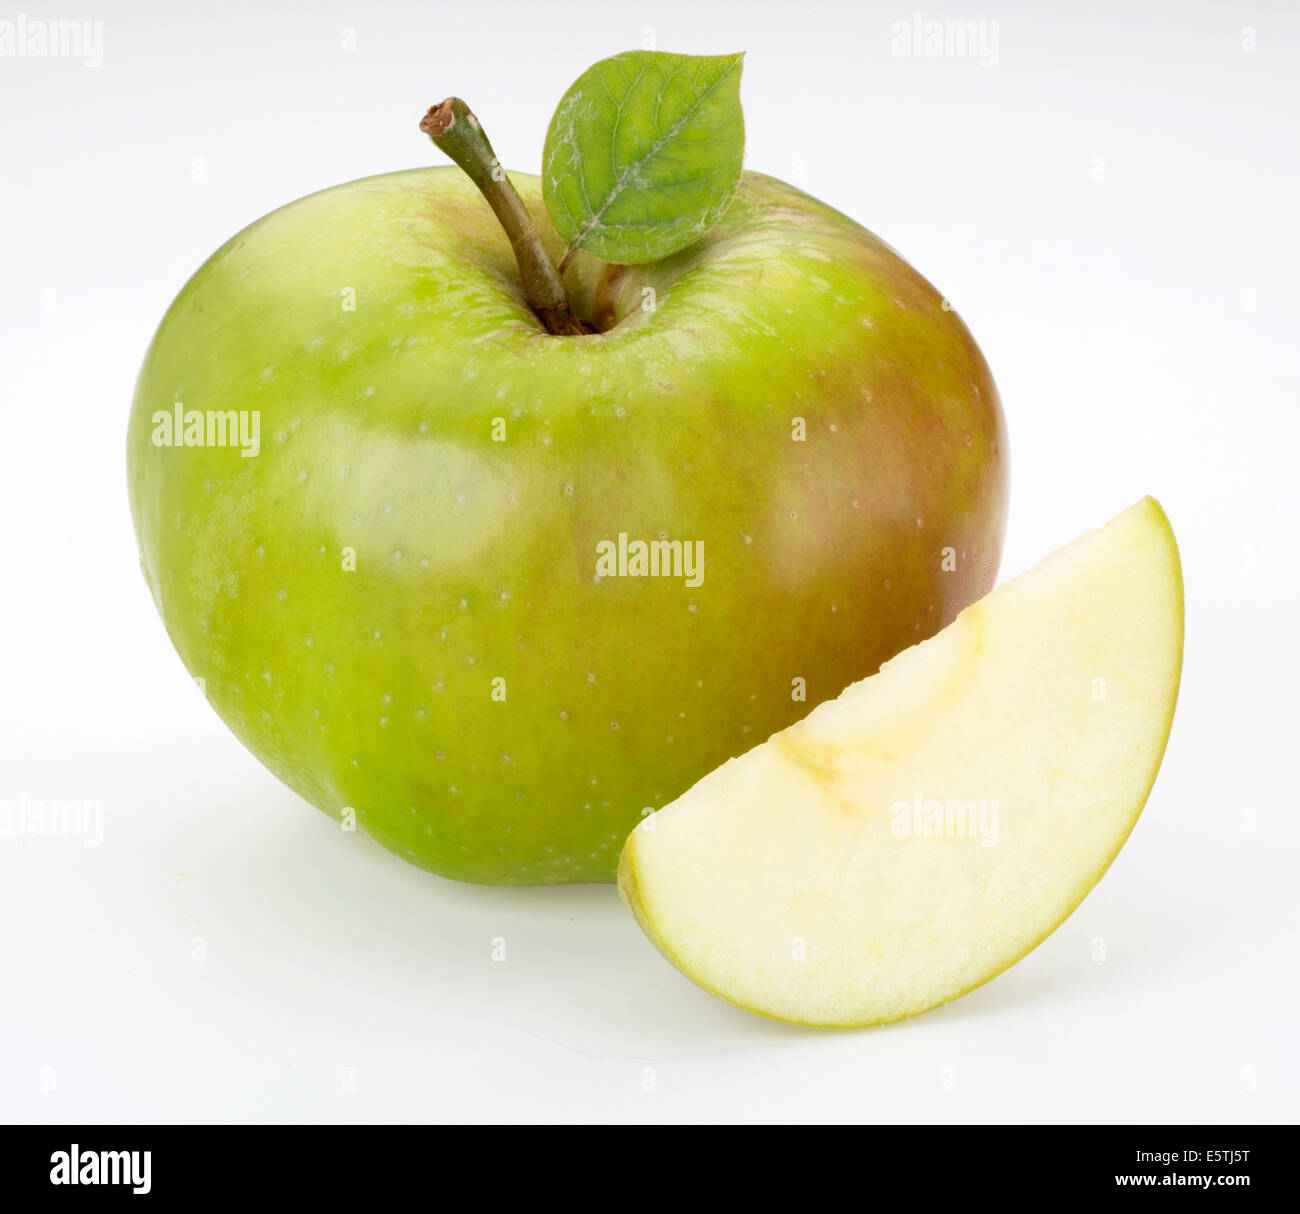 FRESH BRAMLEY APPLES WITH SLICE - Stock Image